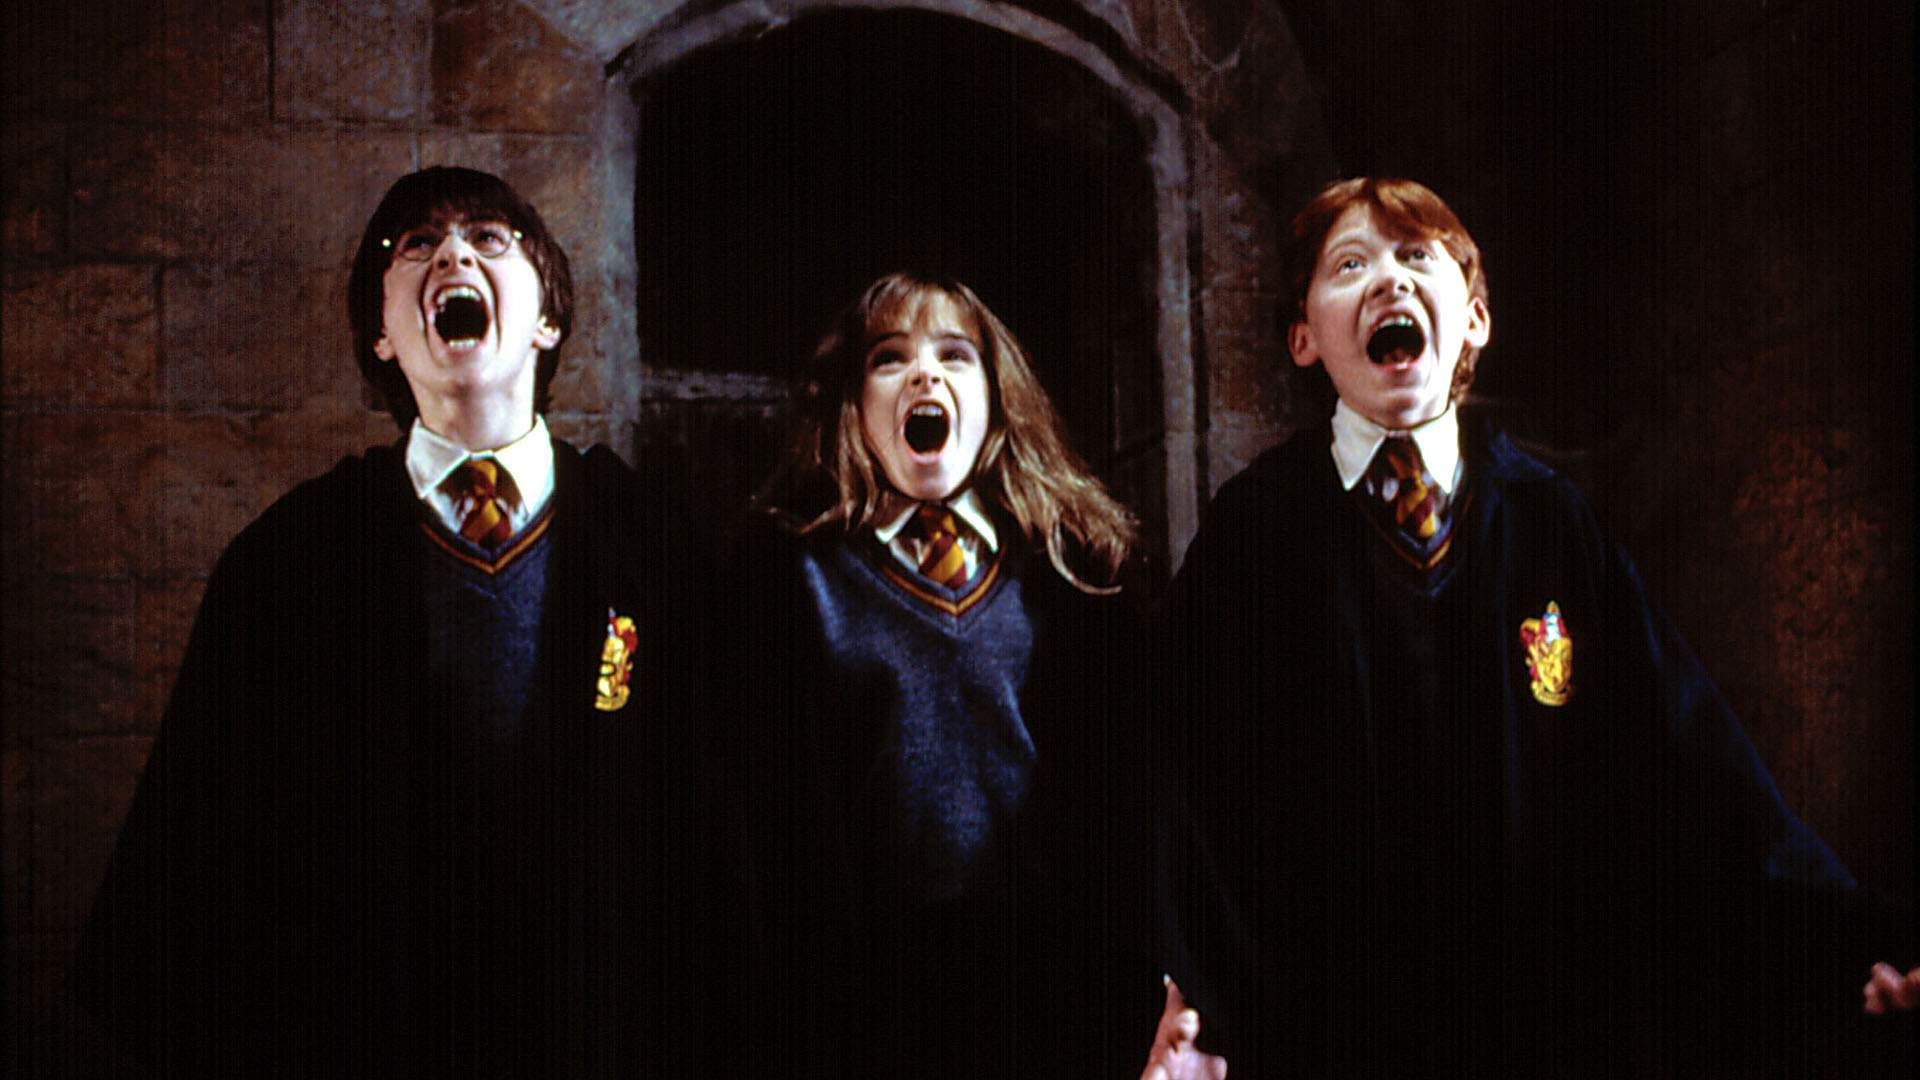 It Looks Like 'Harry Potter' Might Be Turned Into a TV Series